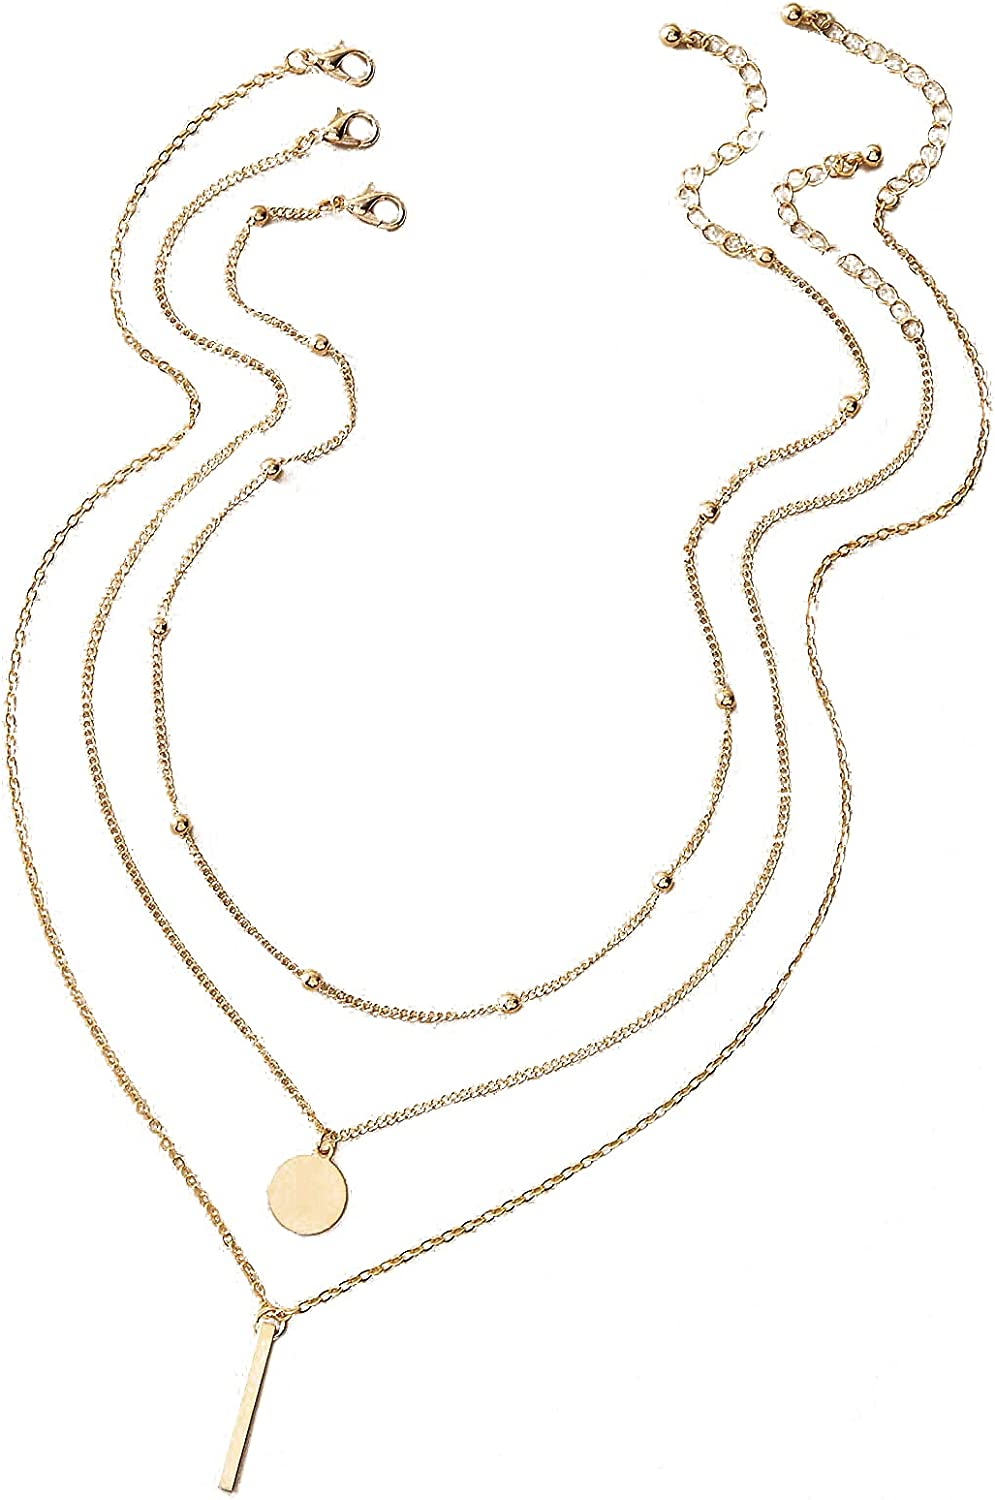 Milumia Women's 3pcs Layered Y Pendant Choker Necklace Bar Disc Charm Necklace Jewelry Girls Gifts